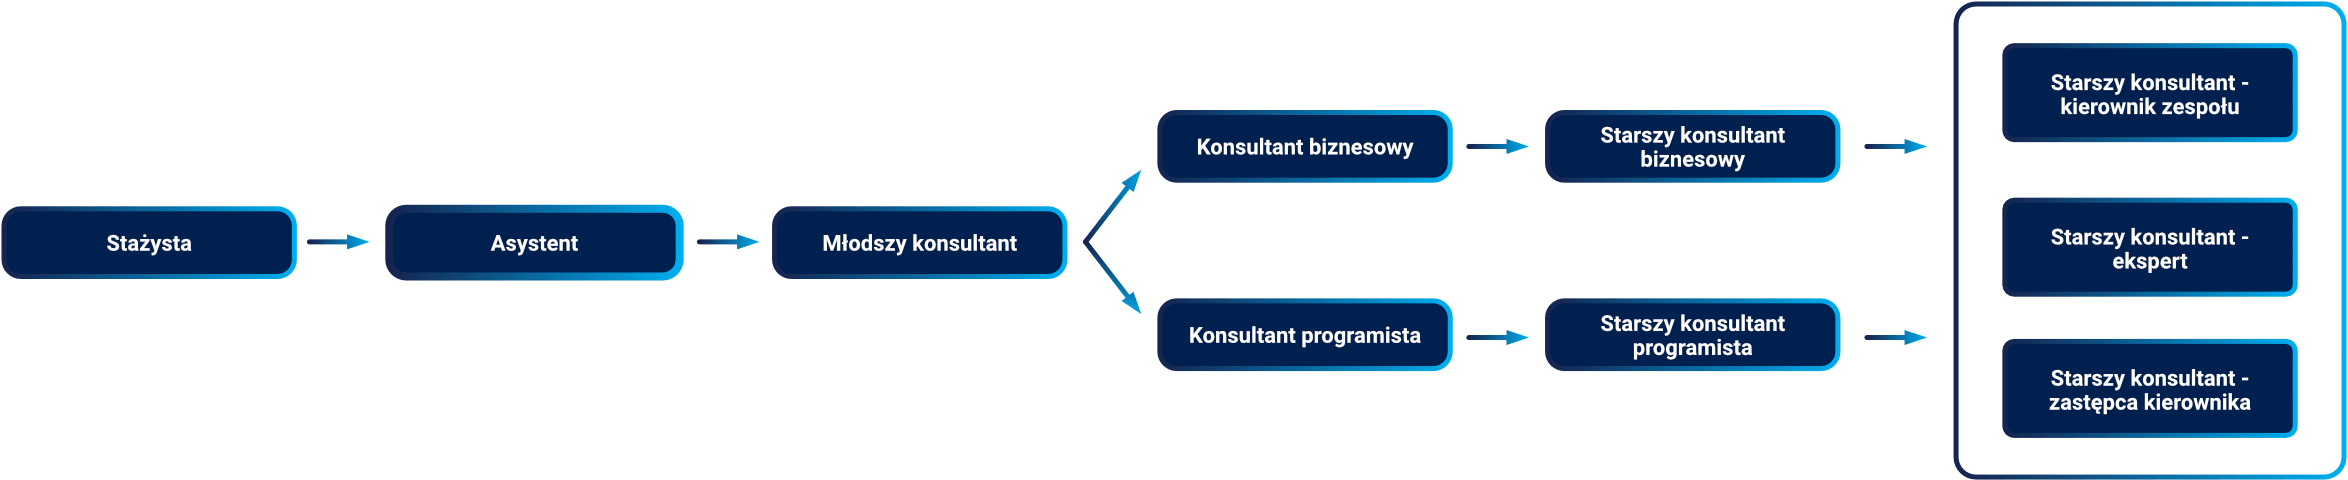 kariera-praca-konsultant-erp-dynamics-365-business-central-dynamics-nav